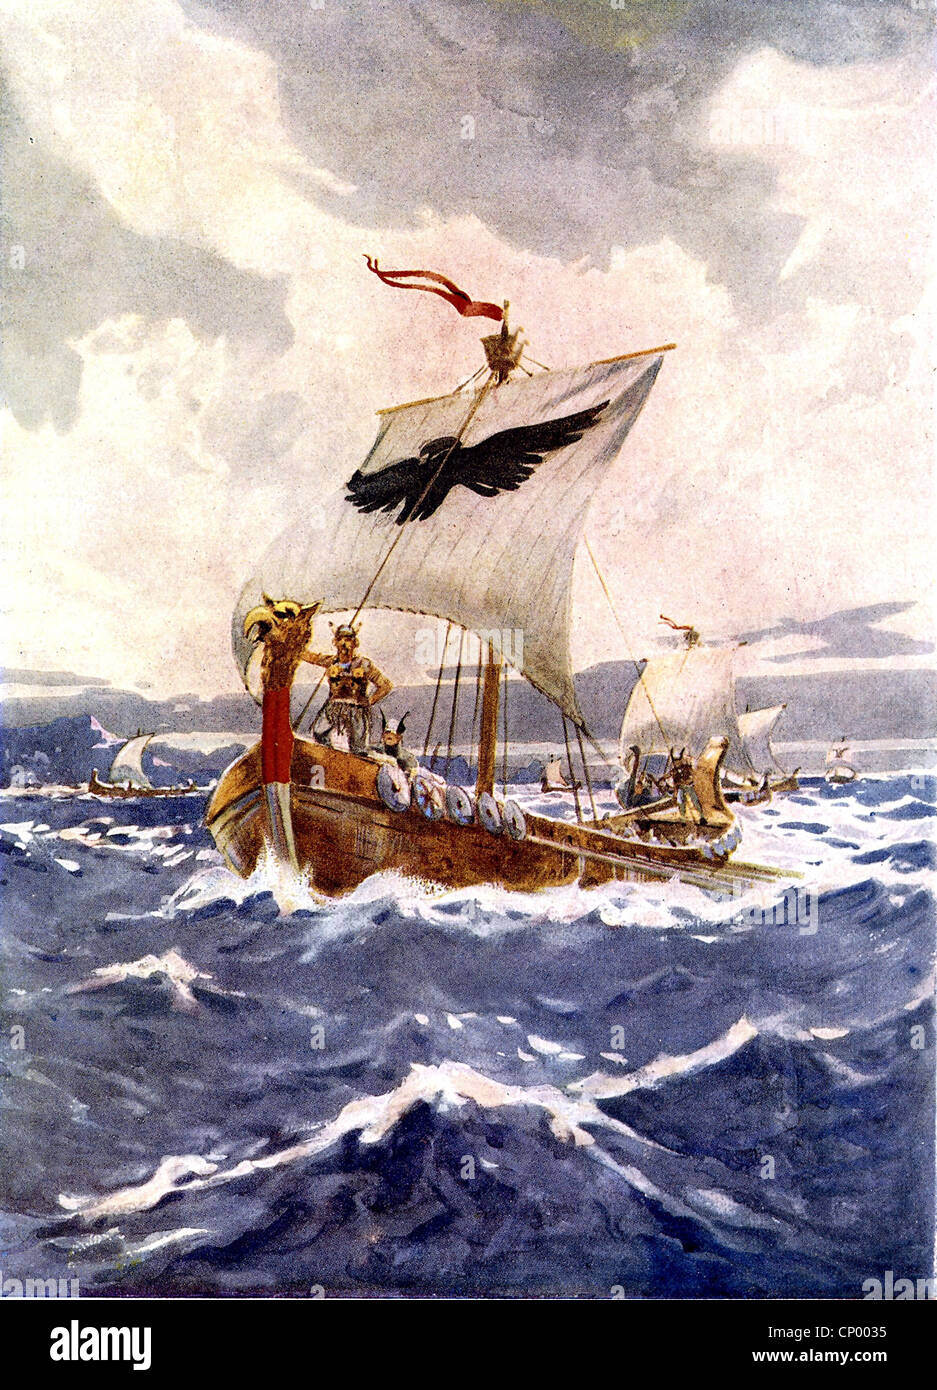 Middle Ages, Vikings, Viking ship, sailing, painting by Arch Webb, historic, historical, ships, boat, sea, Stock Photo